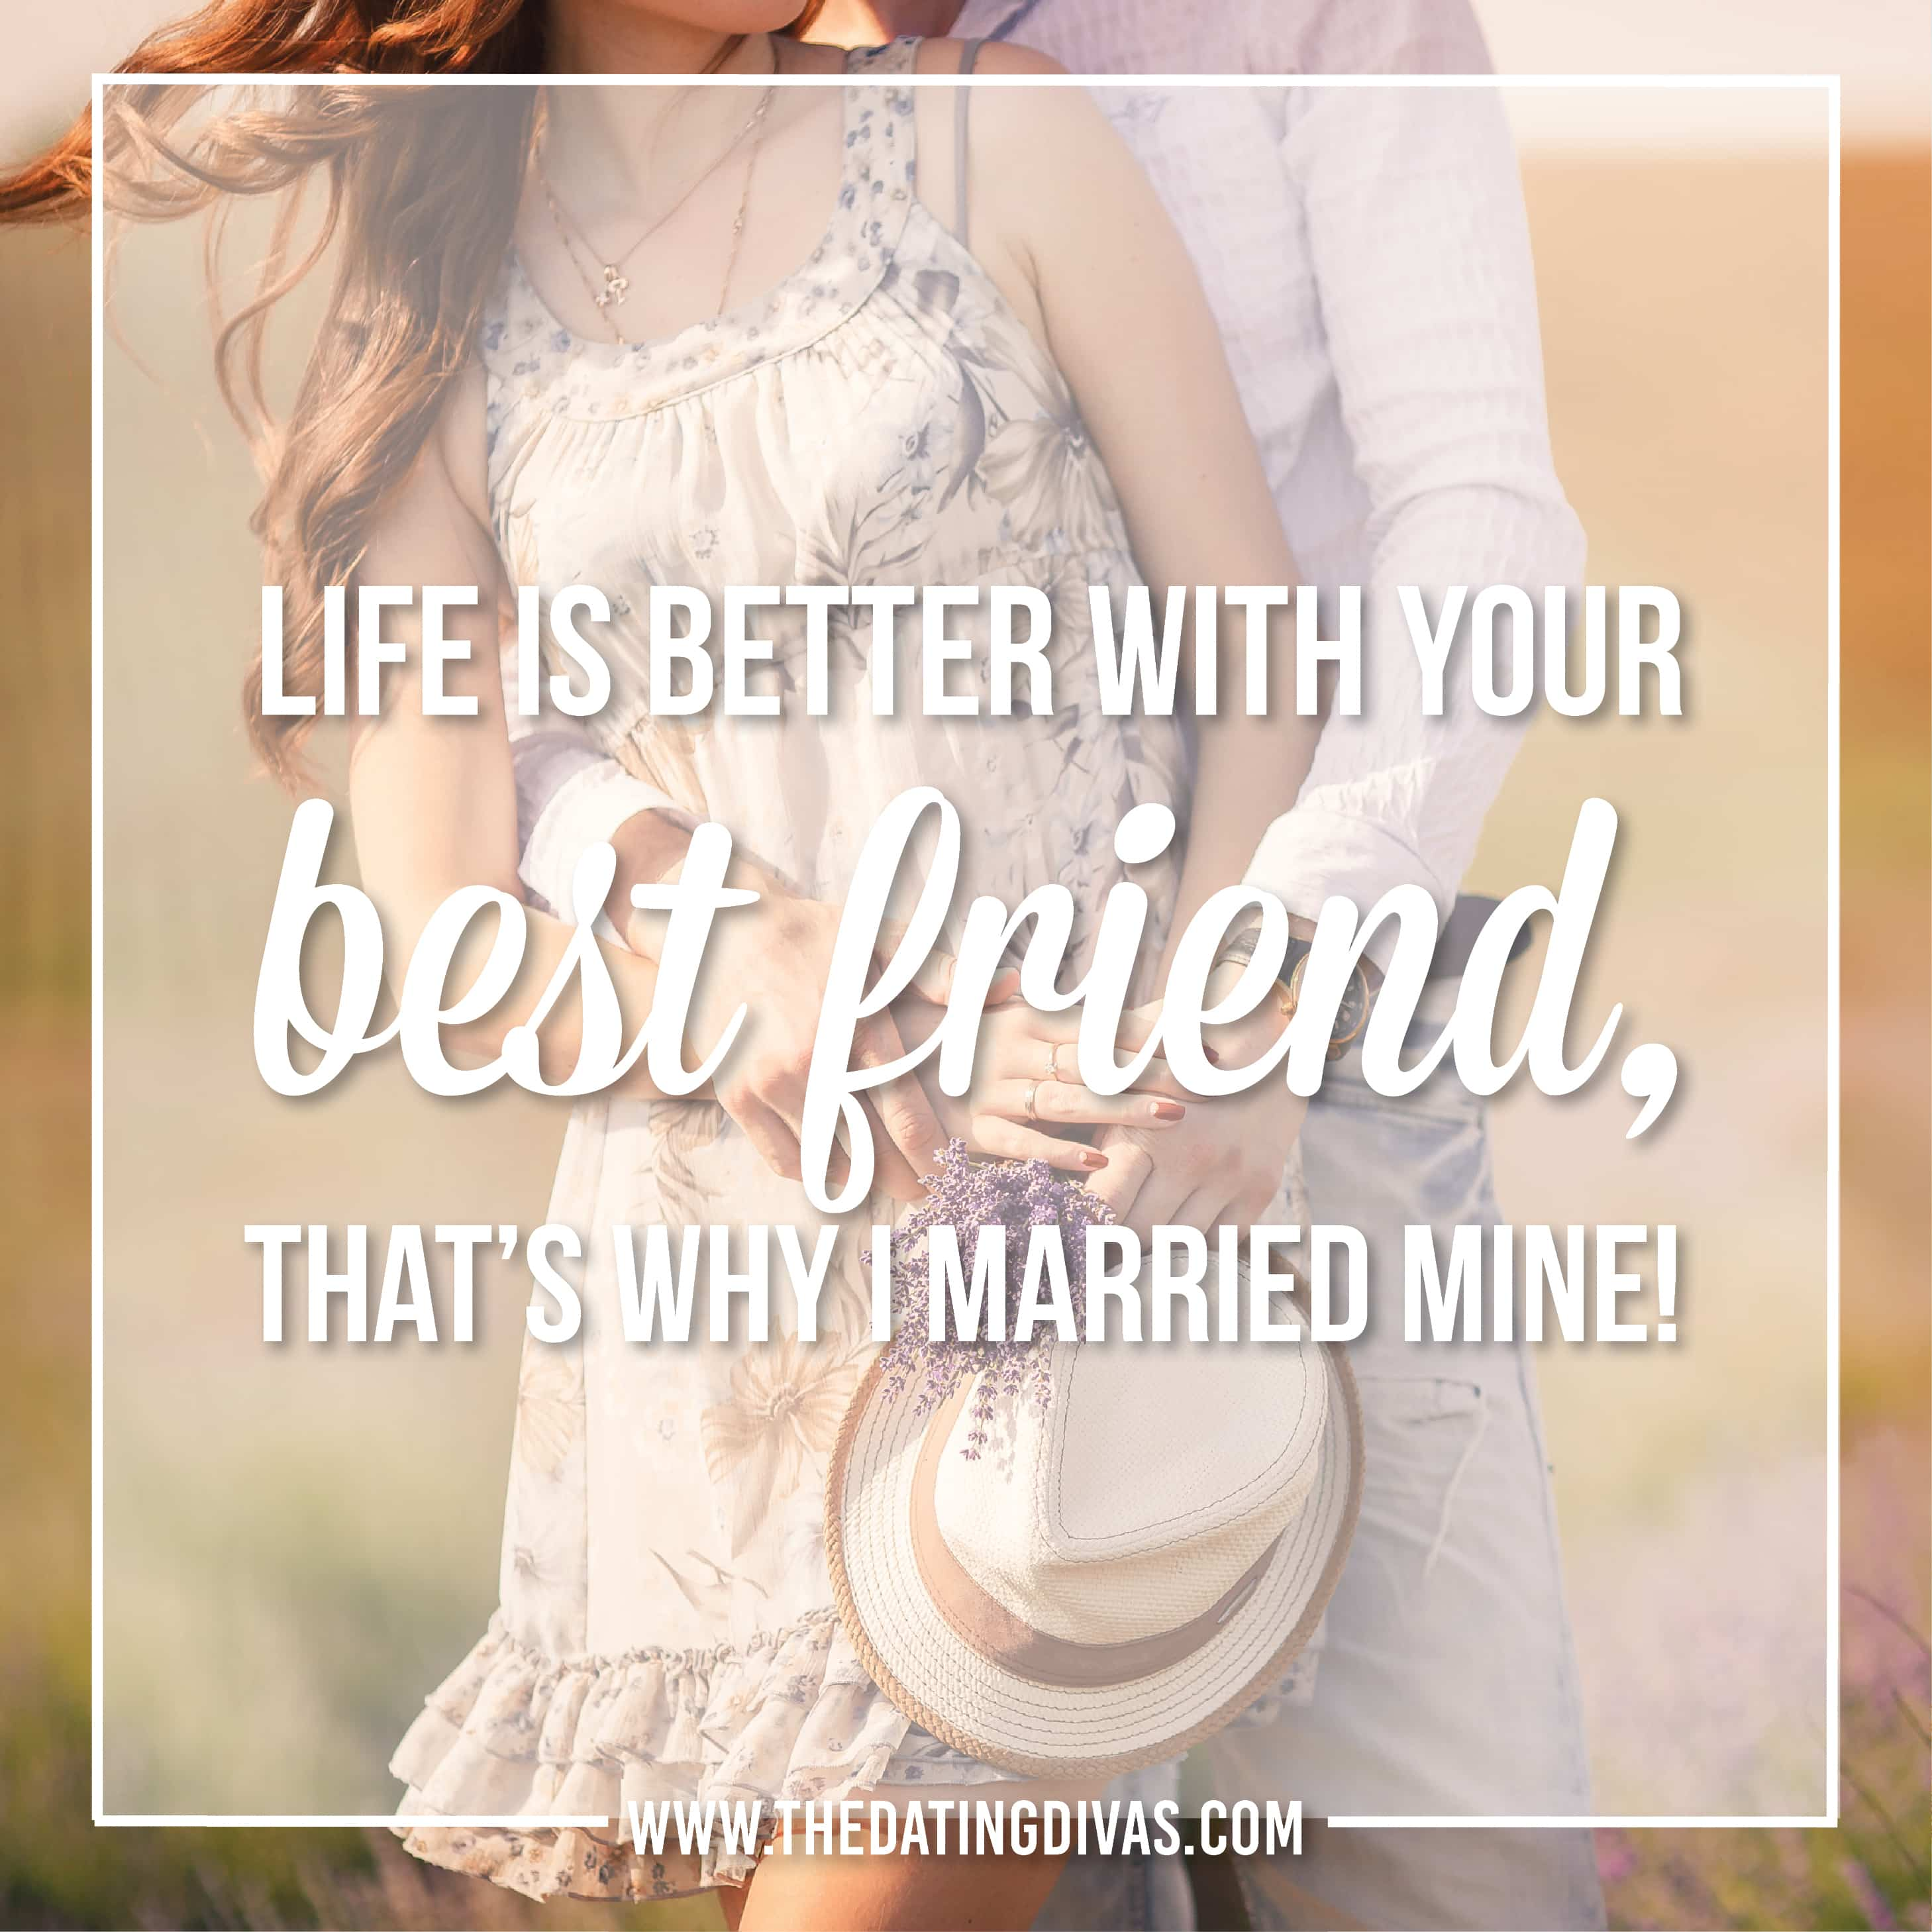 your two best friends are dating Find great deals on ebay for best friend rings in shape: heart occasions: banquet, party, gift, dating, daily life give a gift to your best friend to let.